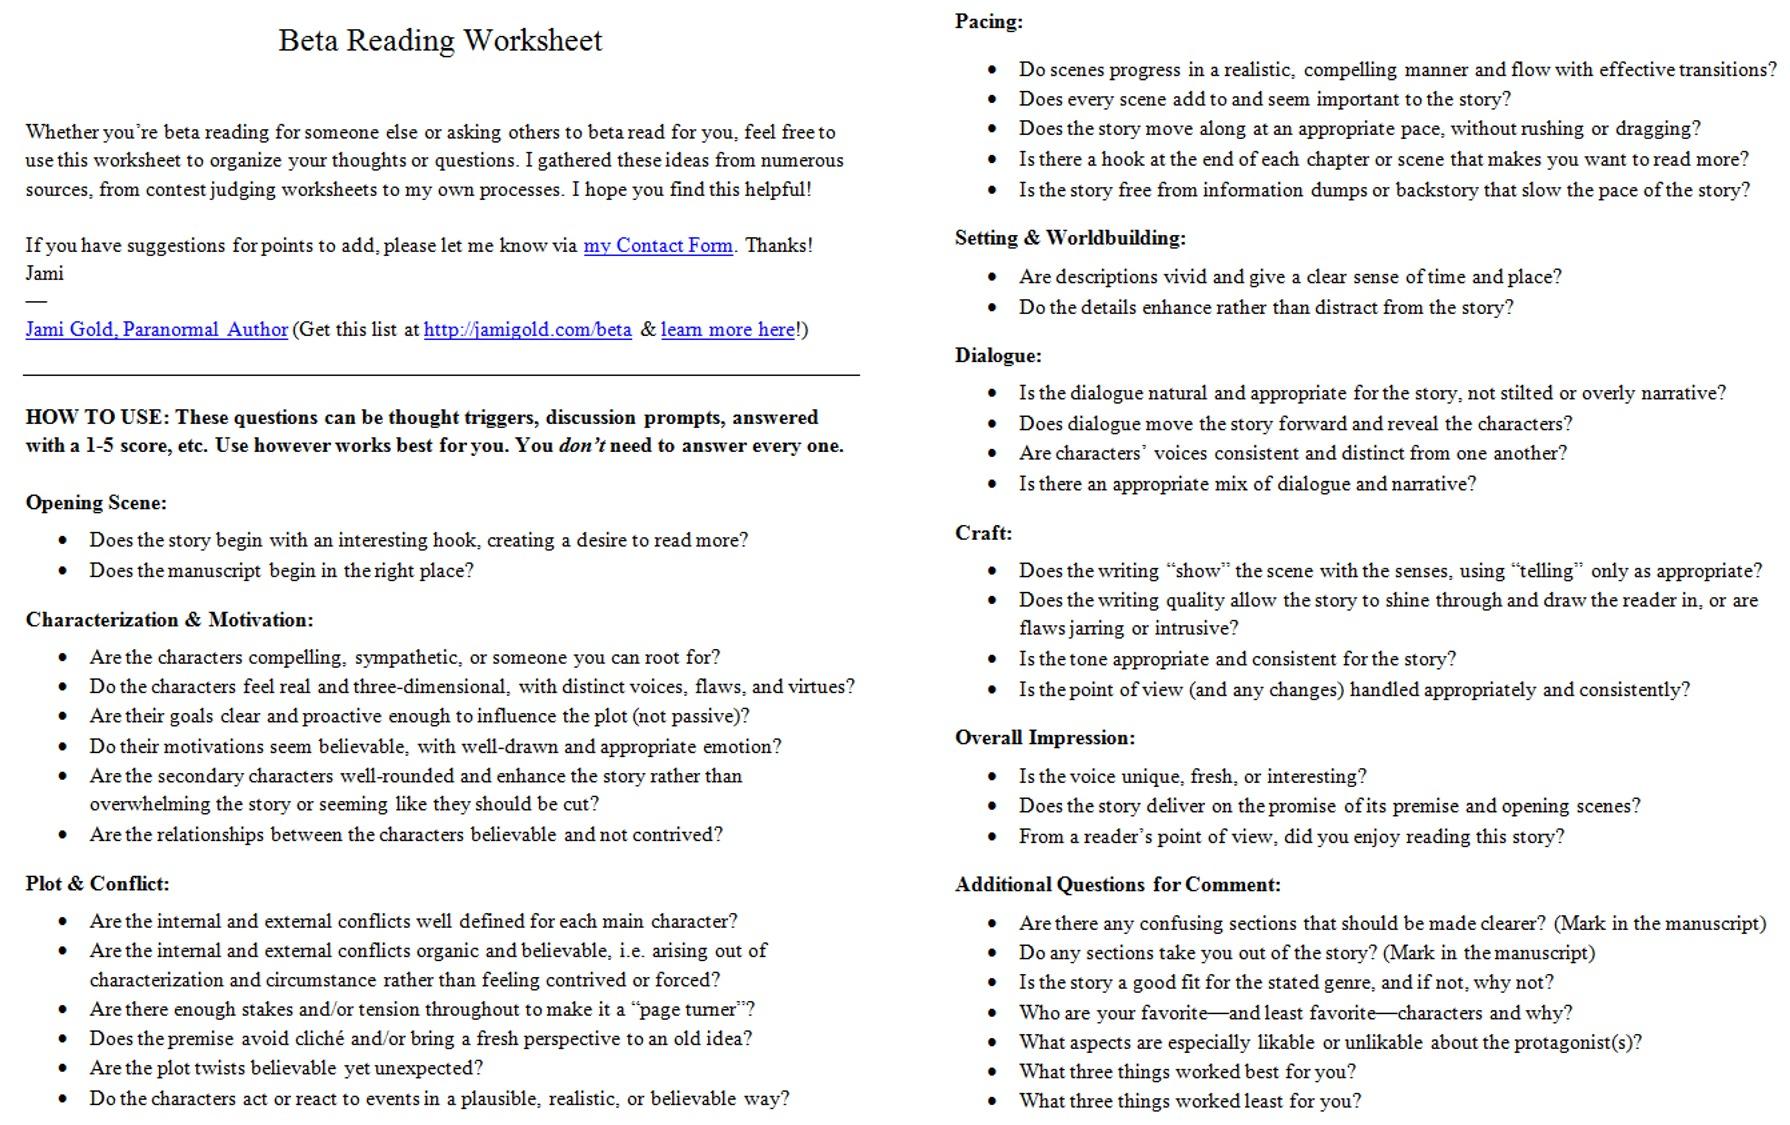 Aldiablosus  Outstanding Worksheets For Writers  Jami Gold Paranormal Author With Foxy Screen Shot Of The Twopage Beta Reading Worksheet With Agreeable Free Science Worksheet Also Kindergarten Symmetry Worksheets In Addition Worksheet On Integers For Grade  And Reading Readiness Worksheets Kindergarten As Well As In And Out Math Worksheets Additionally Math Printing Worksheets From Jamigoldcom With Aldiablosus  Foxy Worksheets For Writers  Jami Gold Paranormal Author With Agreeable Screen Shot Of The Twopage Beta Reading Worksheet And Outstanding Free Science Worksheet Also Kindergarten Symmetry Worksheets In Addition Worksheet On Integers For Grade  From Jamigoldcom